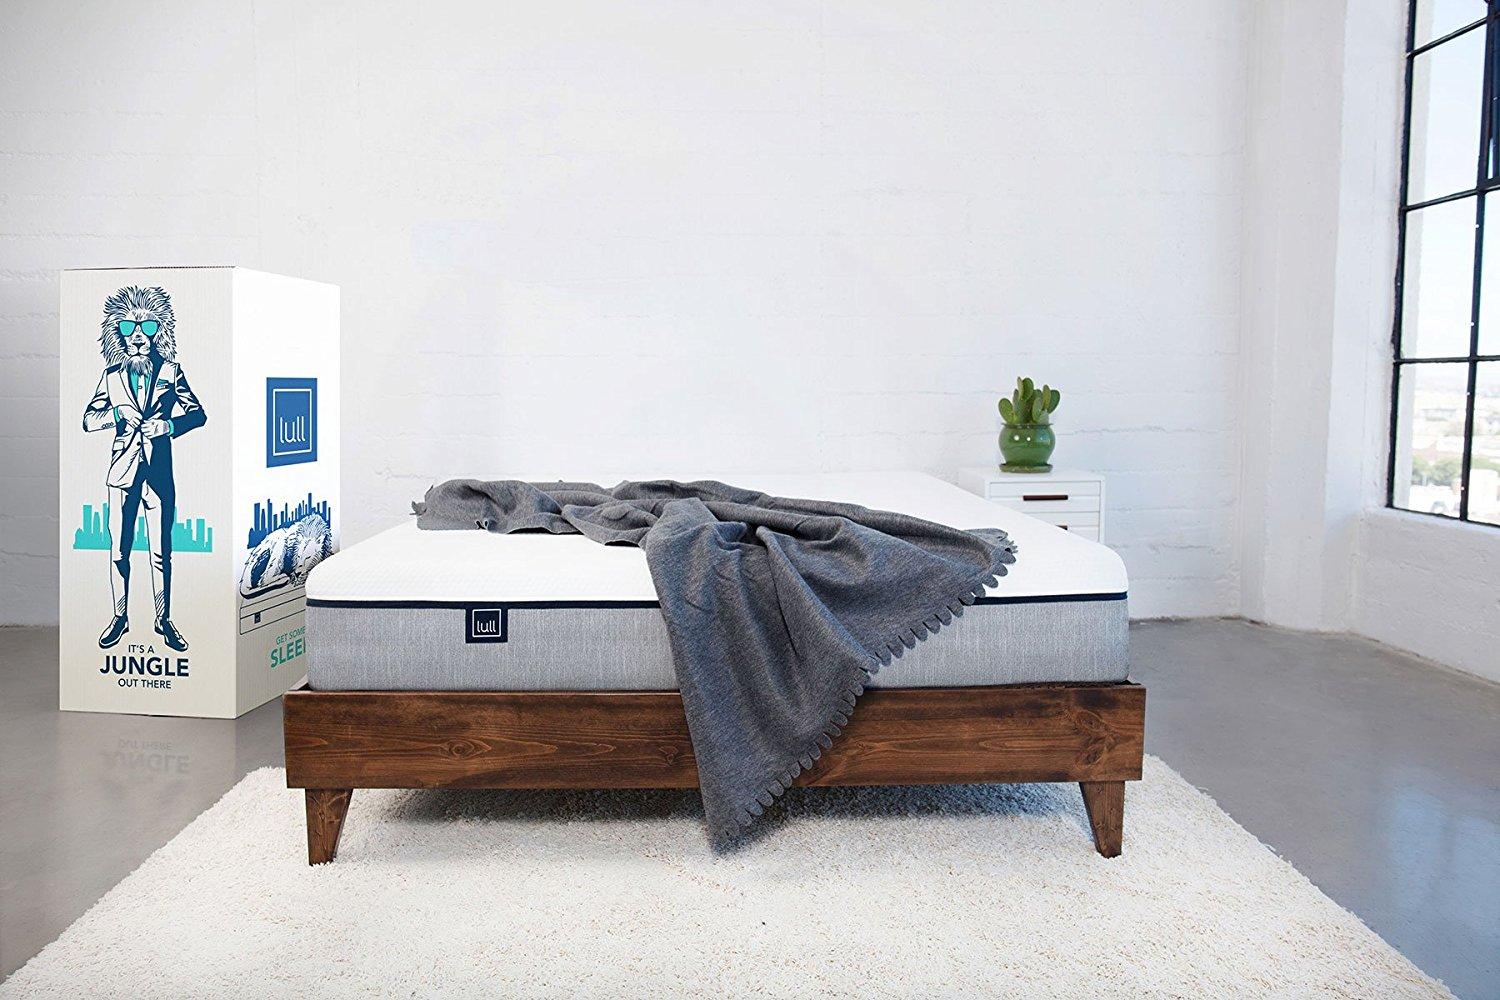 lull mattress reviews detailed tests ratings coupon included. Black Bedroom Furniture Sets. Home Design Ideas